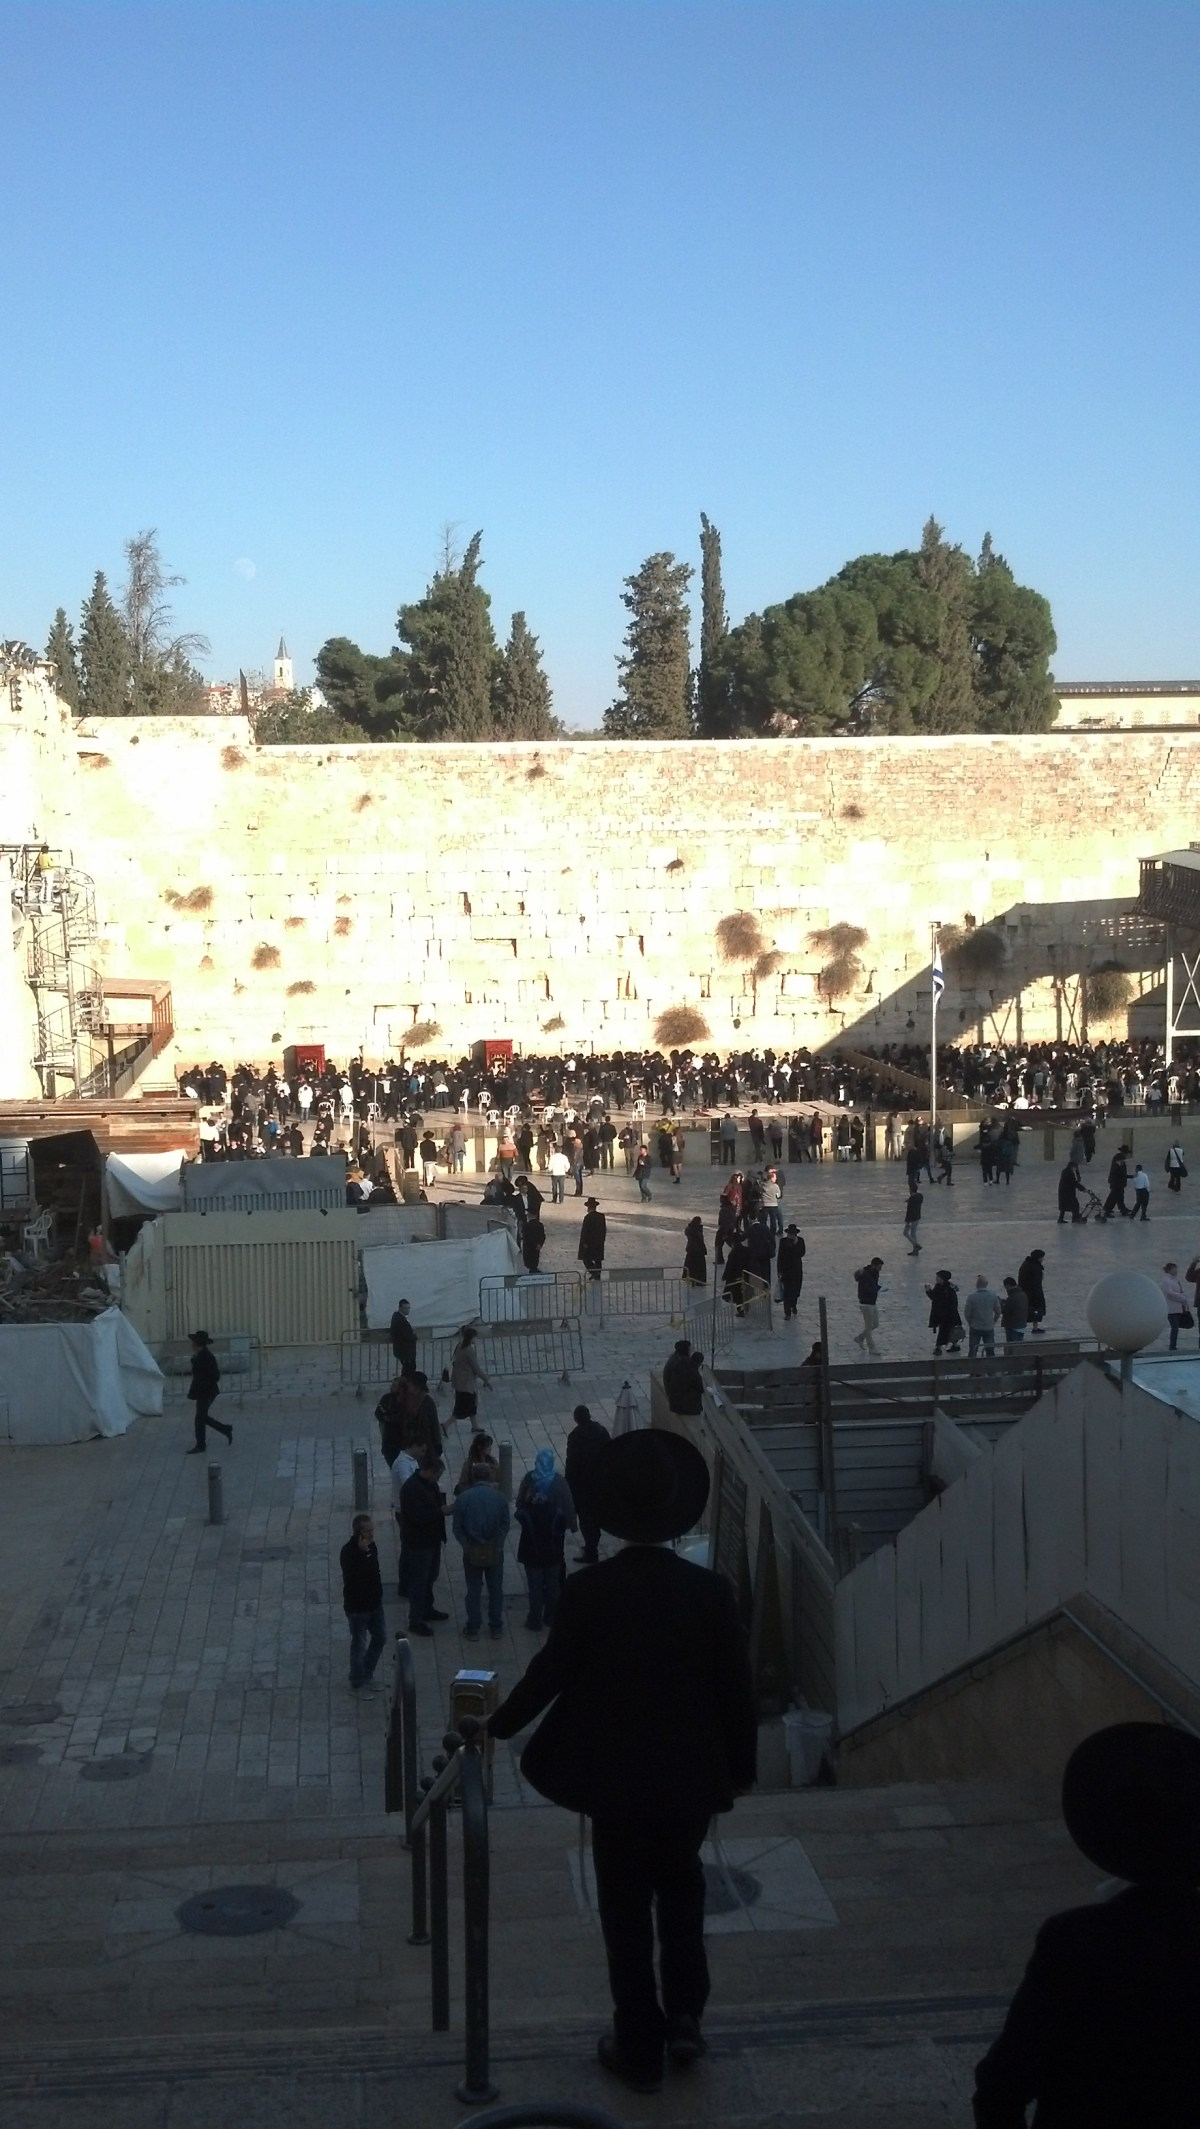 Western Wall in Jerusalem, Israel: Photo Gallery